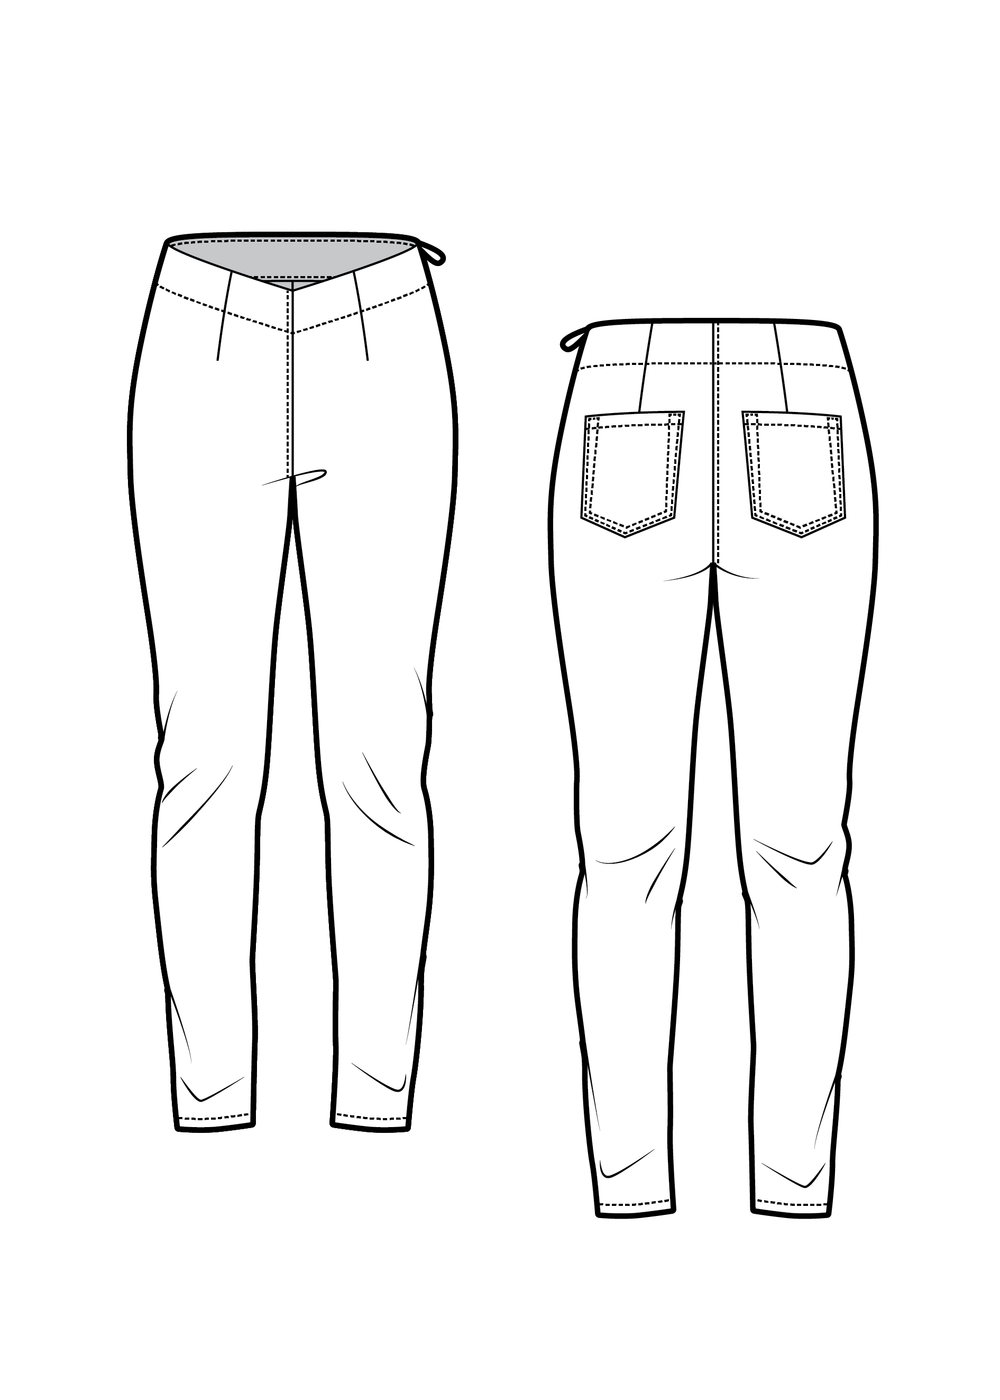 RACHEL the skinny trousers - PDF sewing pattern by Kommatia Patterns